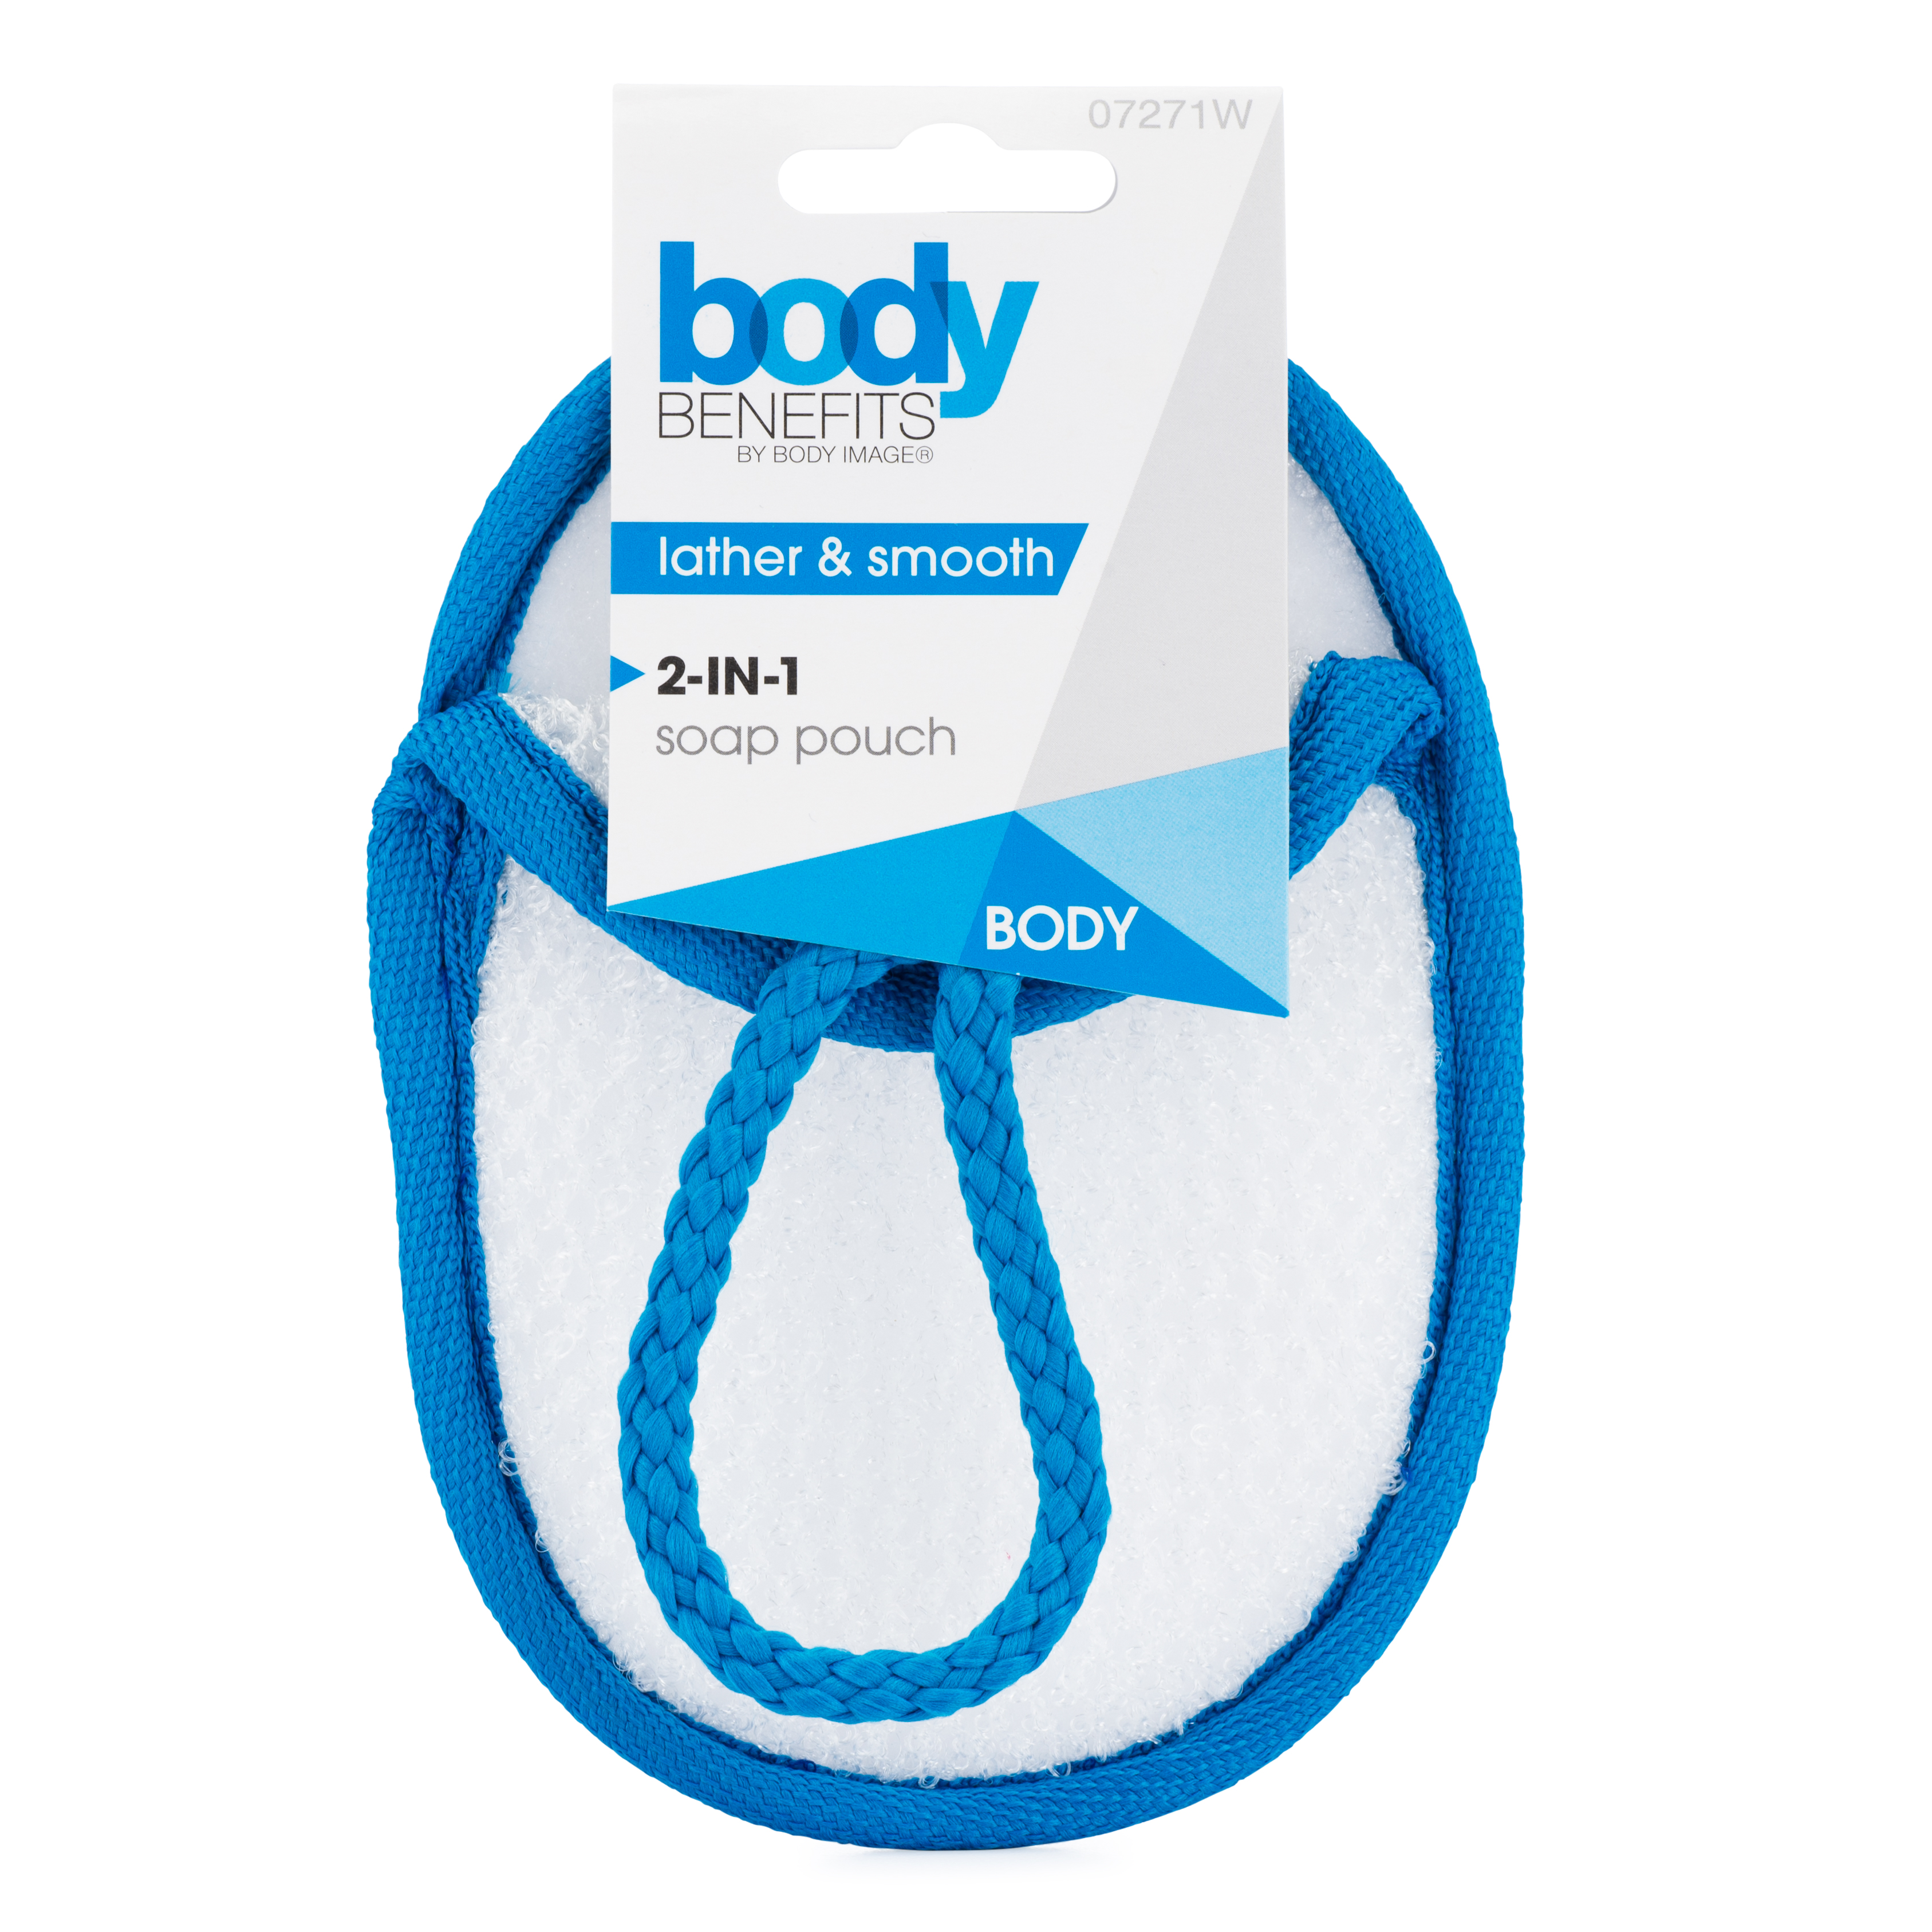 Click here to buy Body Benefits by Body IMage 2-in-1 Loofah Body Buff by Paris Presents Incorporated.